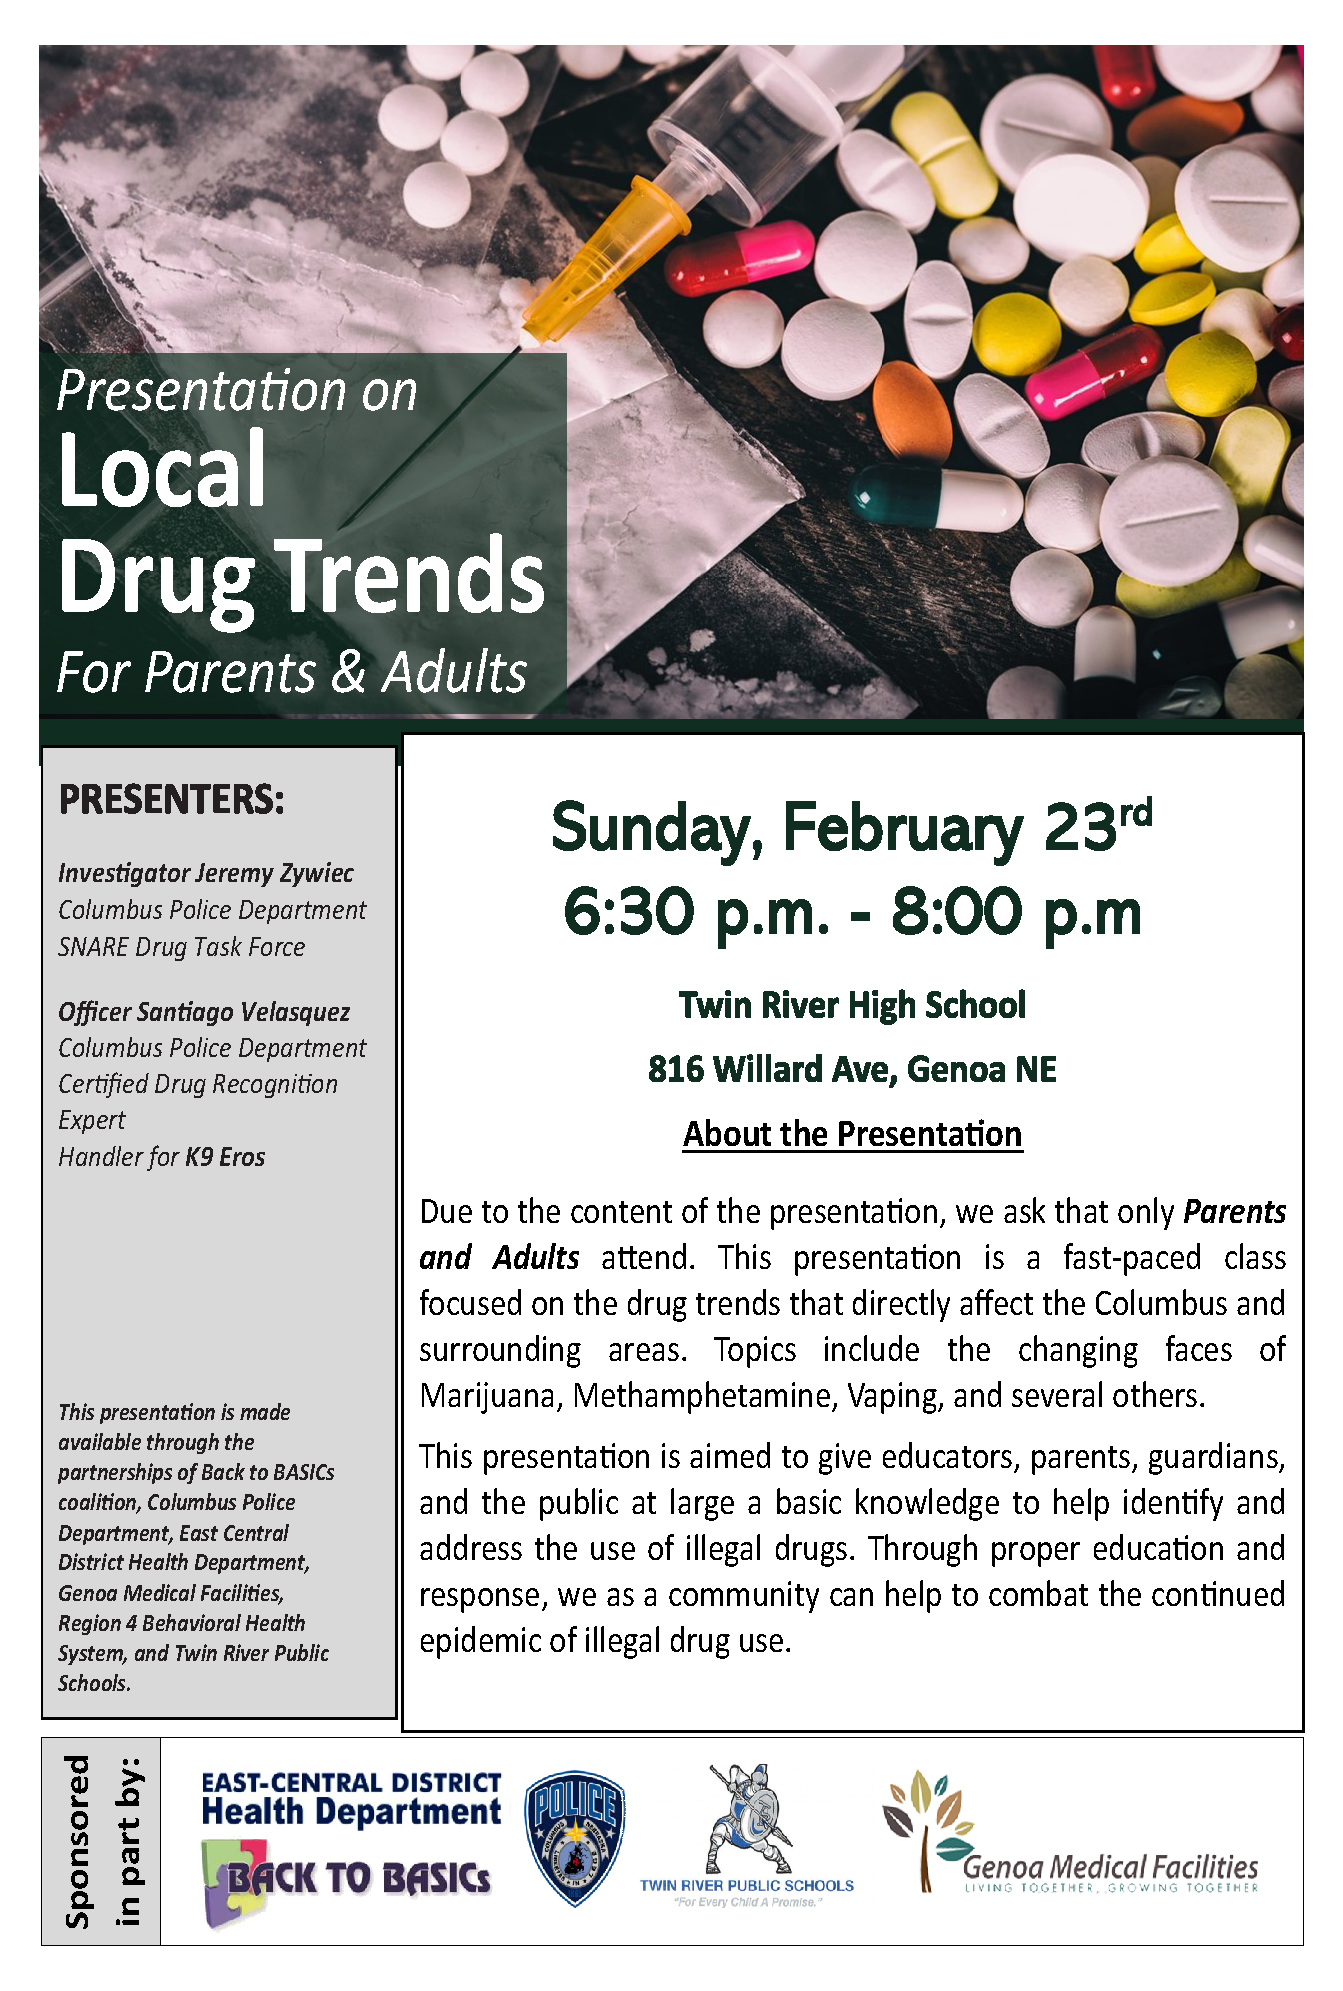 Local Drug Trends for Parents and Adults